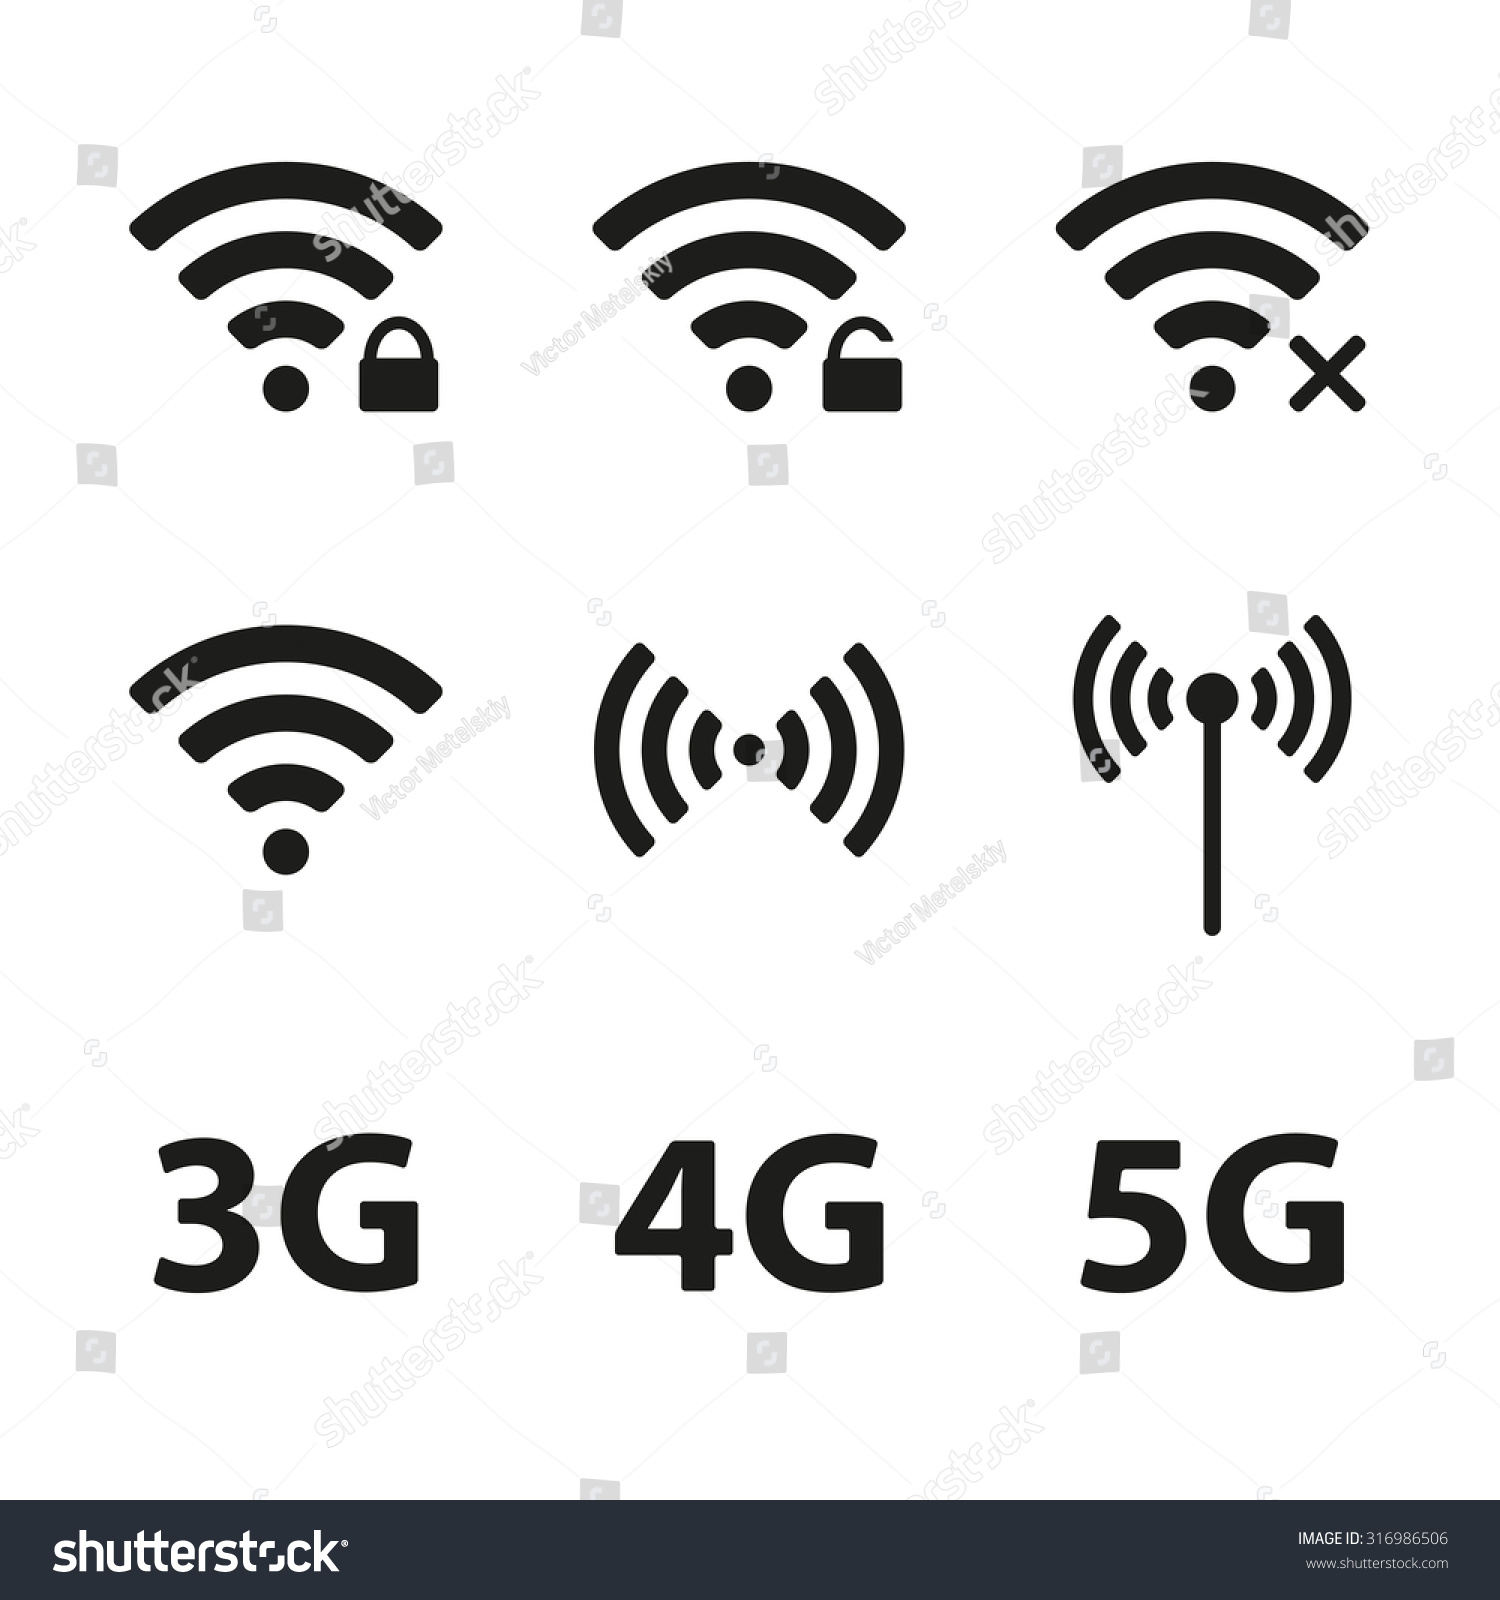 Wireless icon line iconset iconsmind - Wifi And Wireless Icon Set For Remote Internet Access Isolated On White Background Podcast Vector